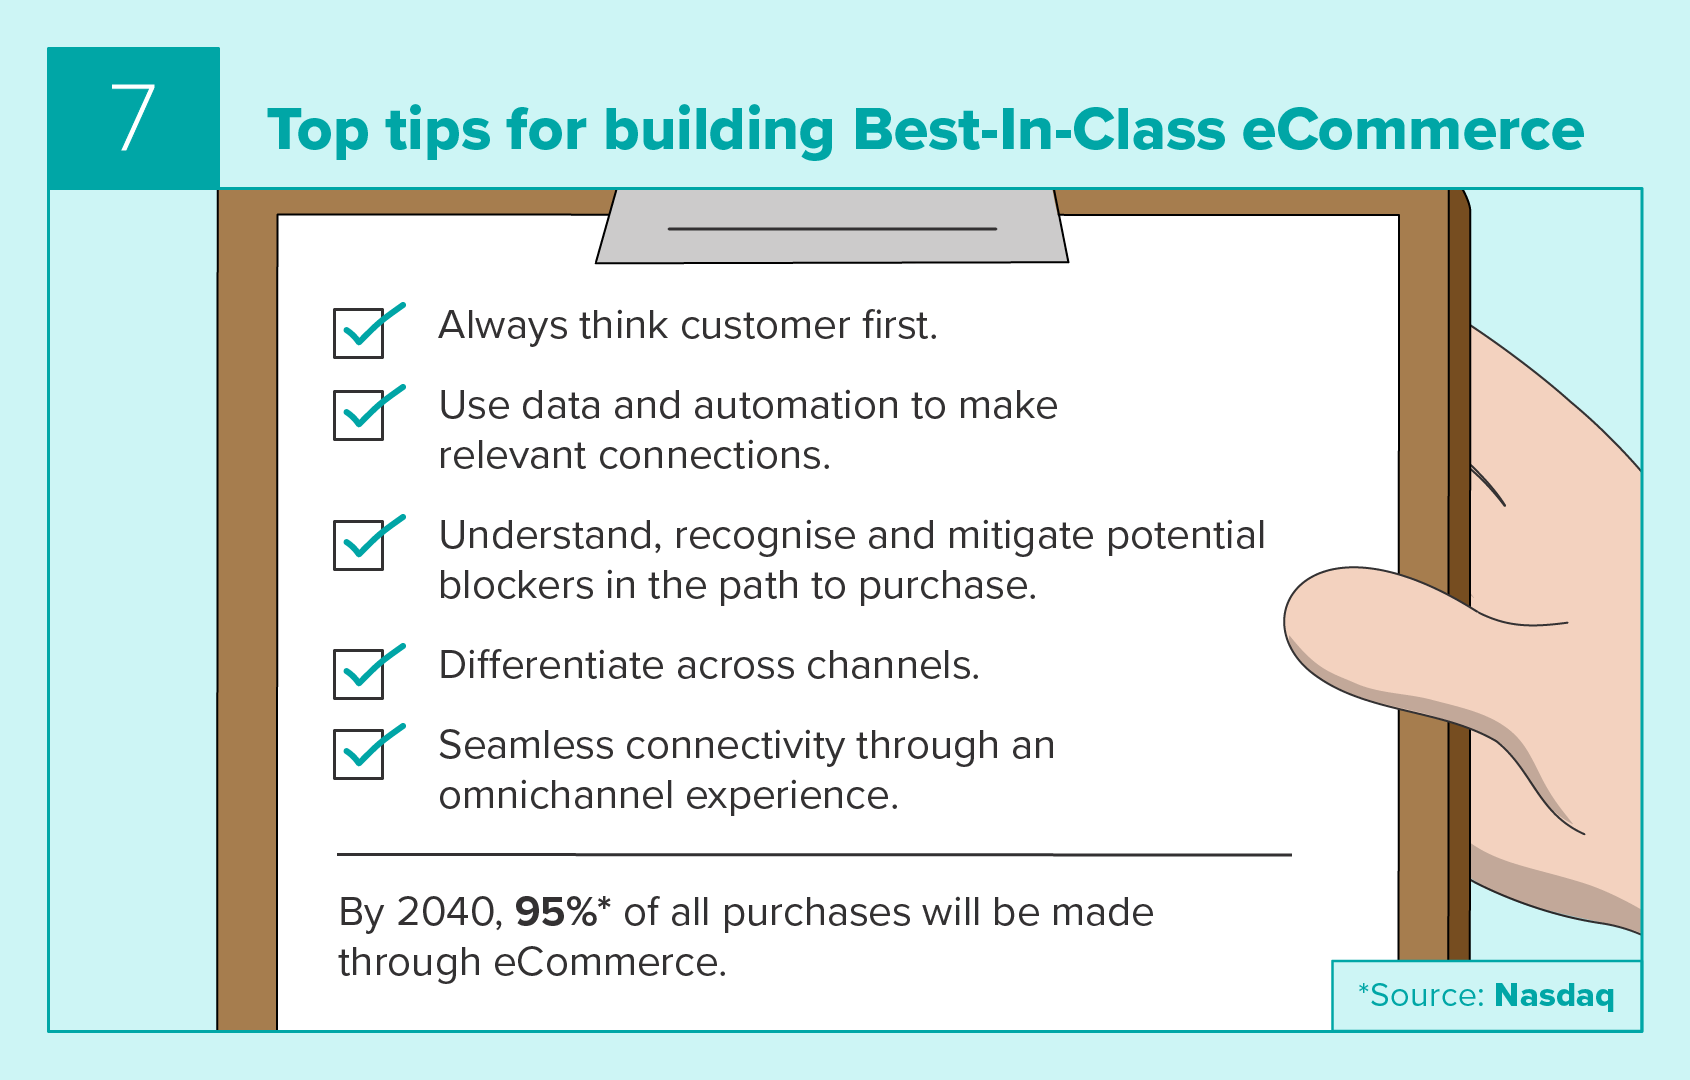 Top tips for building best-in-class eCommerce